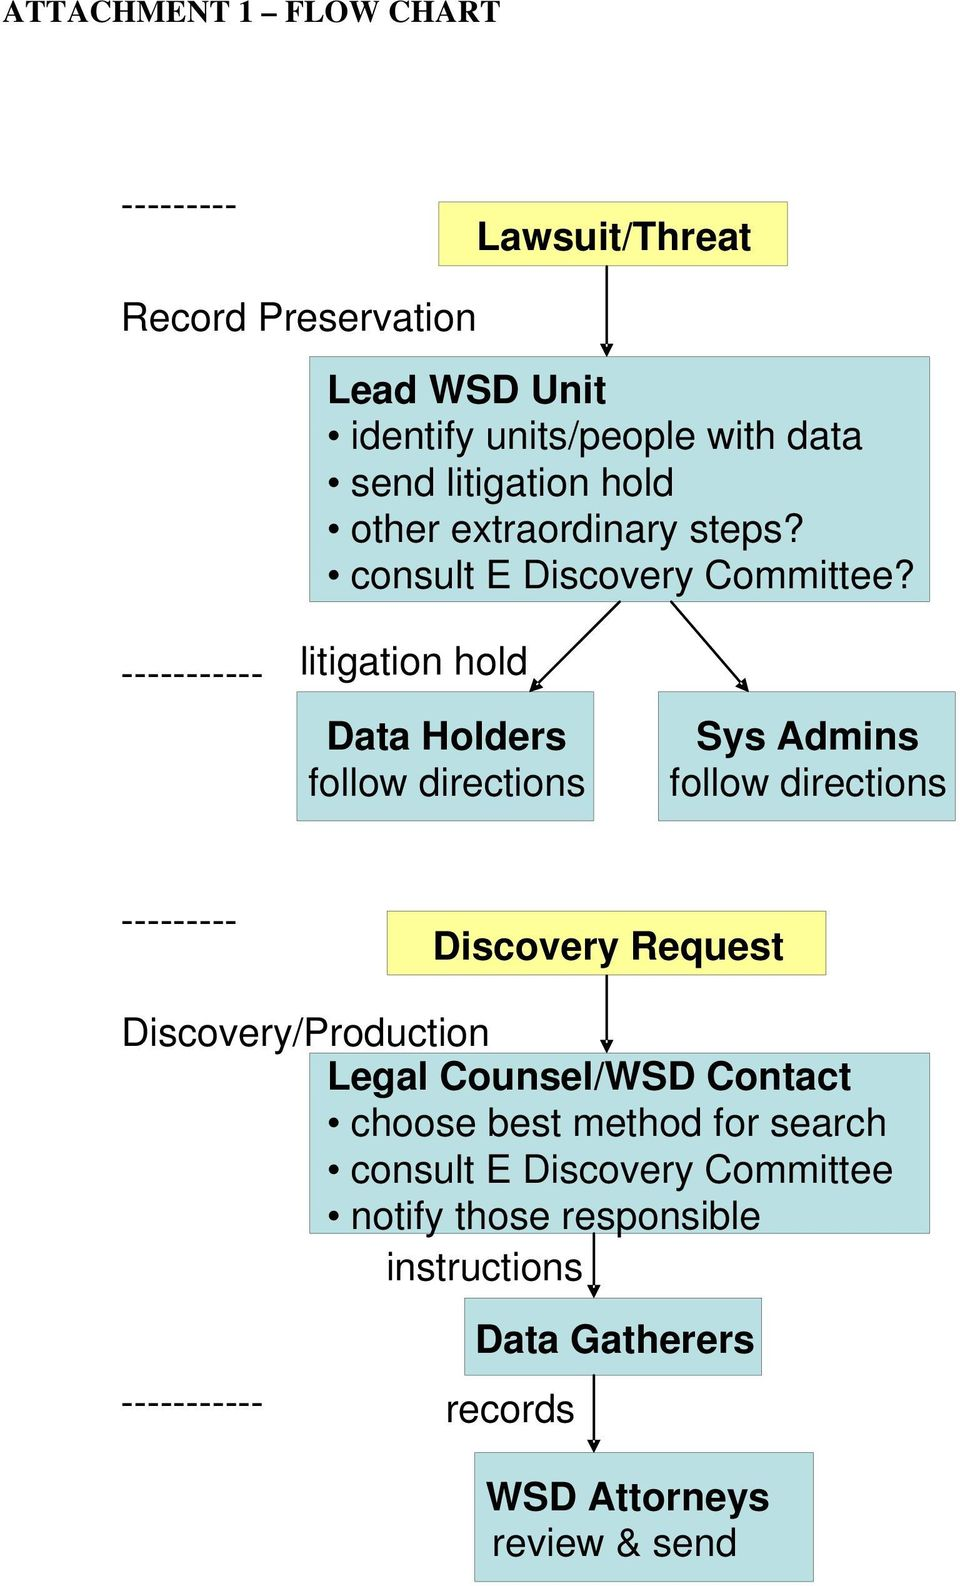 ----------- litigation hold Data Holders follow directions Sys Admins follow directions --------- Discovery Request